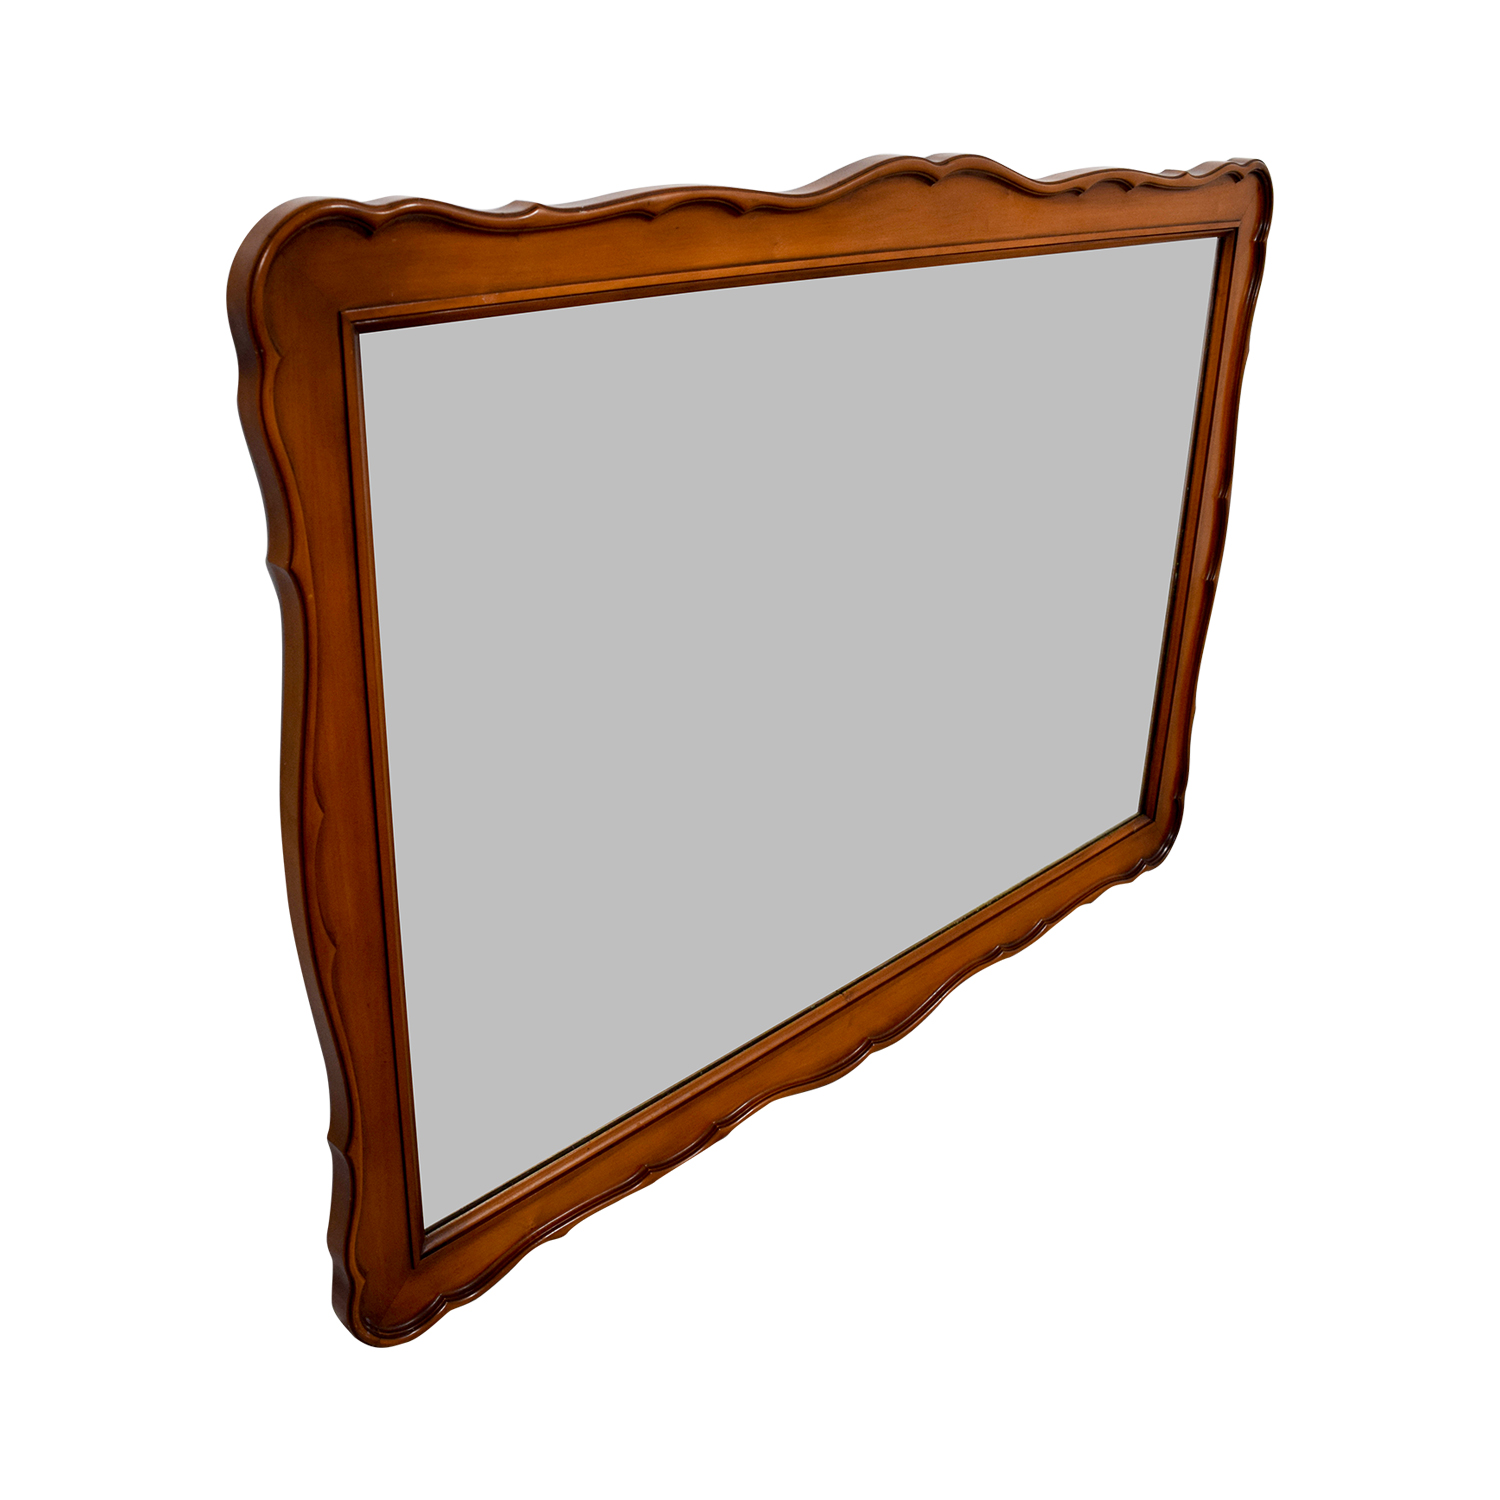 White Fine Furniture White Fine Furniture Wood Framed Mirror dimensions